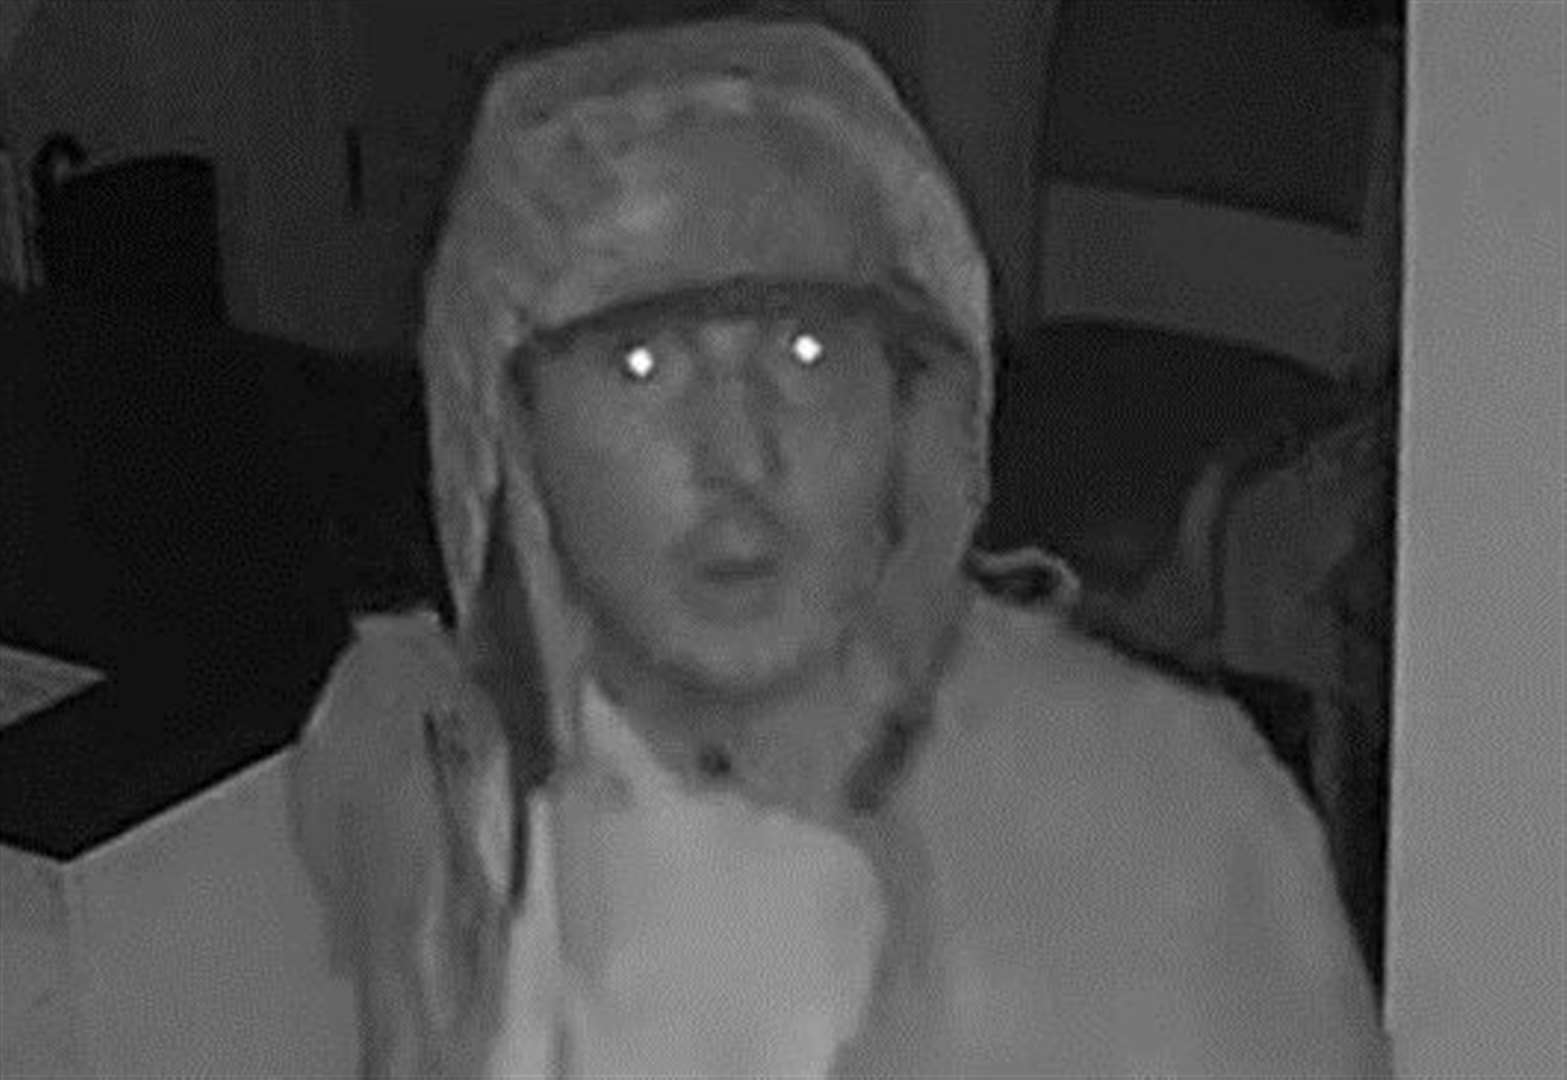 Intruder steals thousands of pounds worth of IT equipment